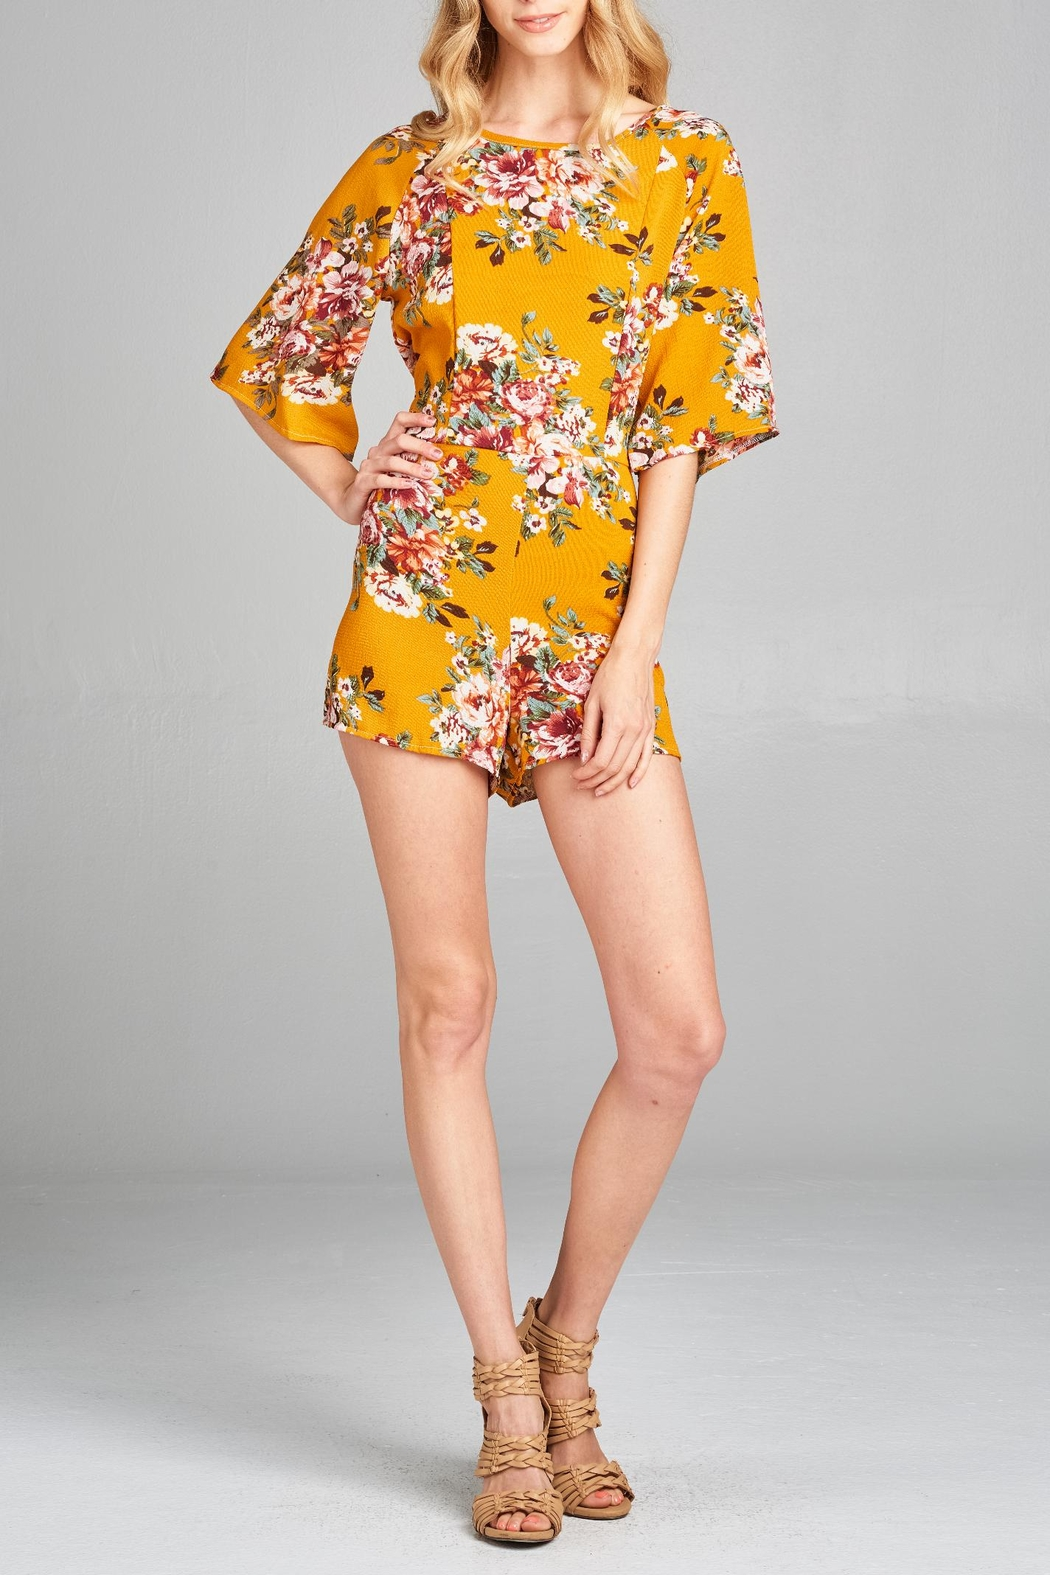 8af811e245dd Racine Floral Cutout Romper from California by Racine Love — Shoptiques